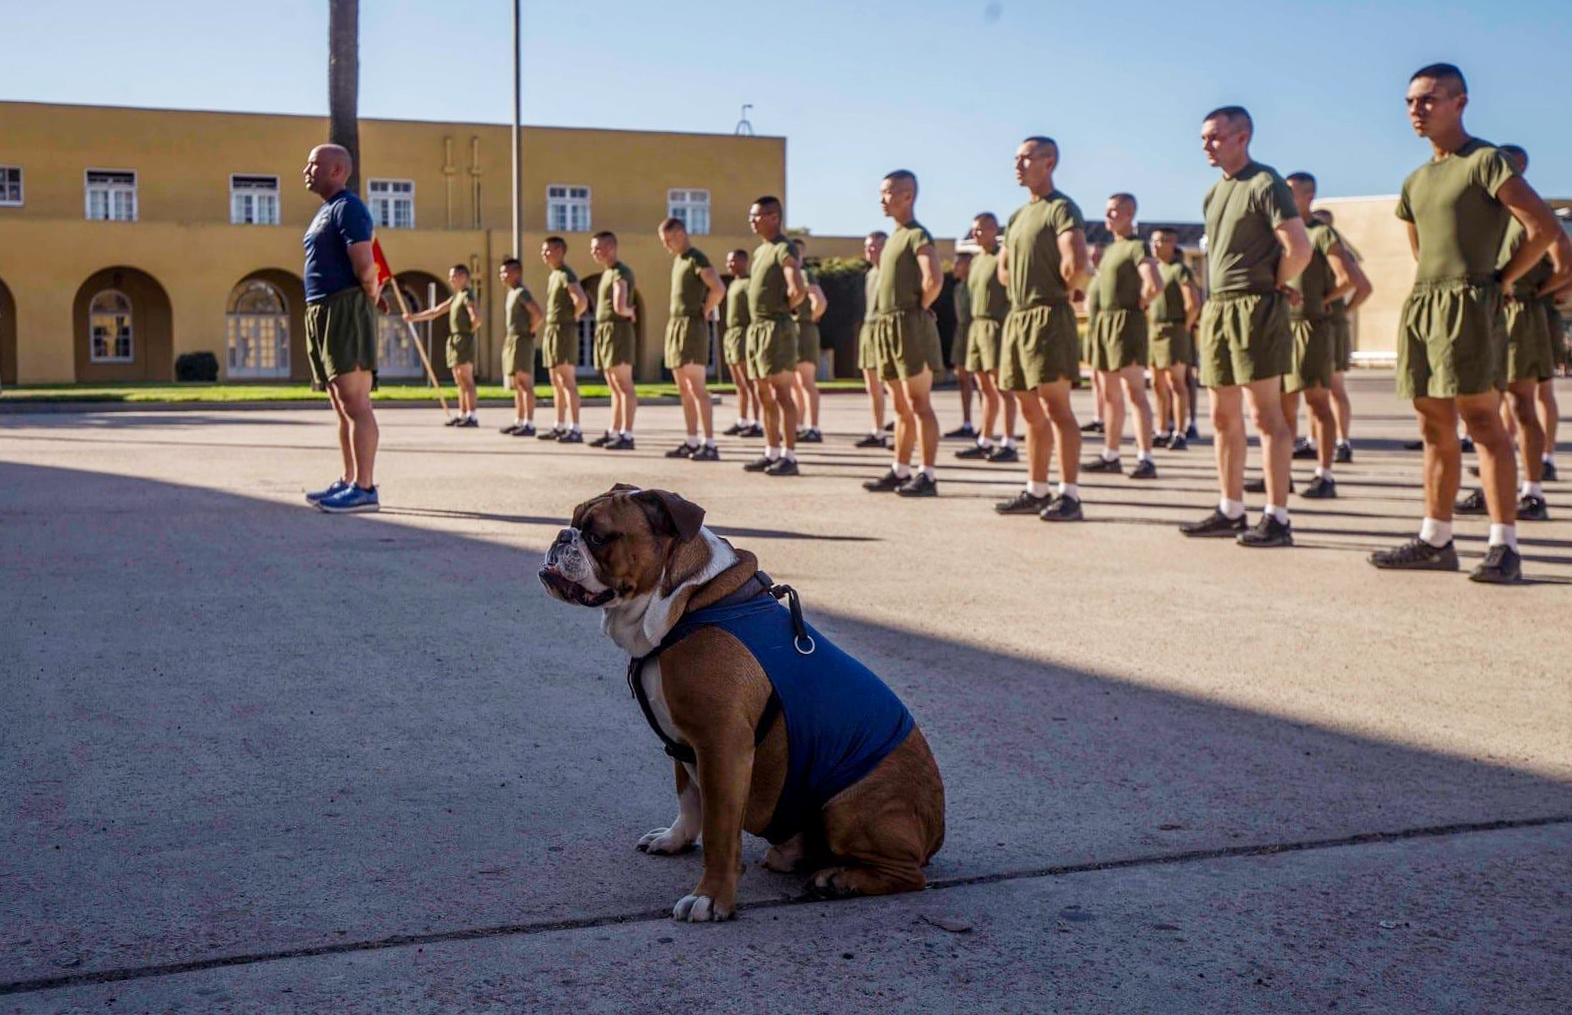 Lance Cpl. Manny, the Marine Corps Recruit Depot (MCRD), San Diego mascot participates in Lima Company's motivational run at MCRD, Jan. 21, 2020.